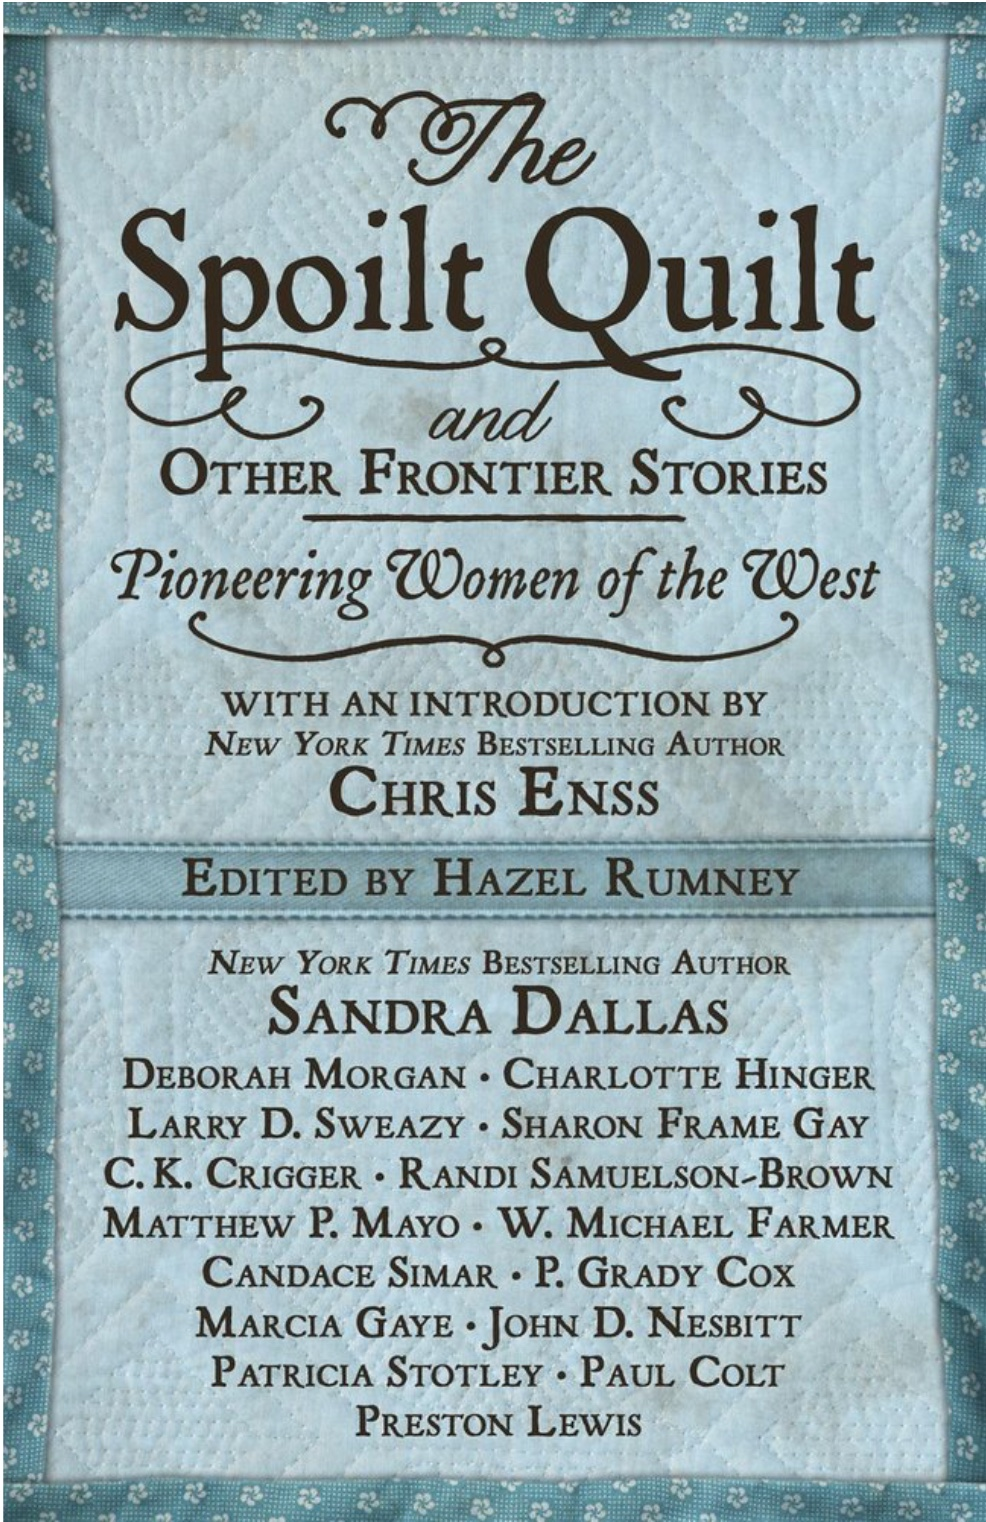 The Spoilt Quilt and Other Frontier Stories